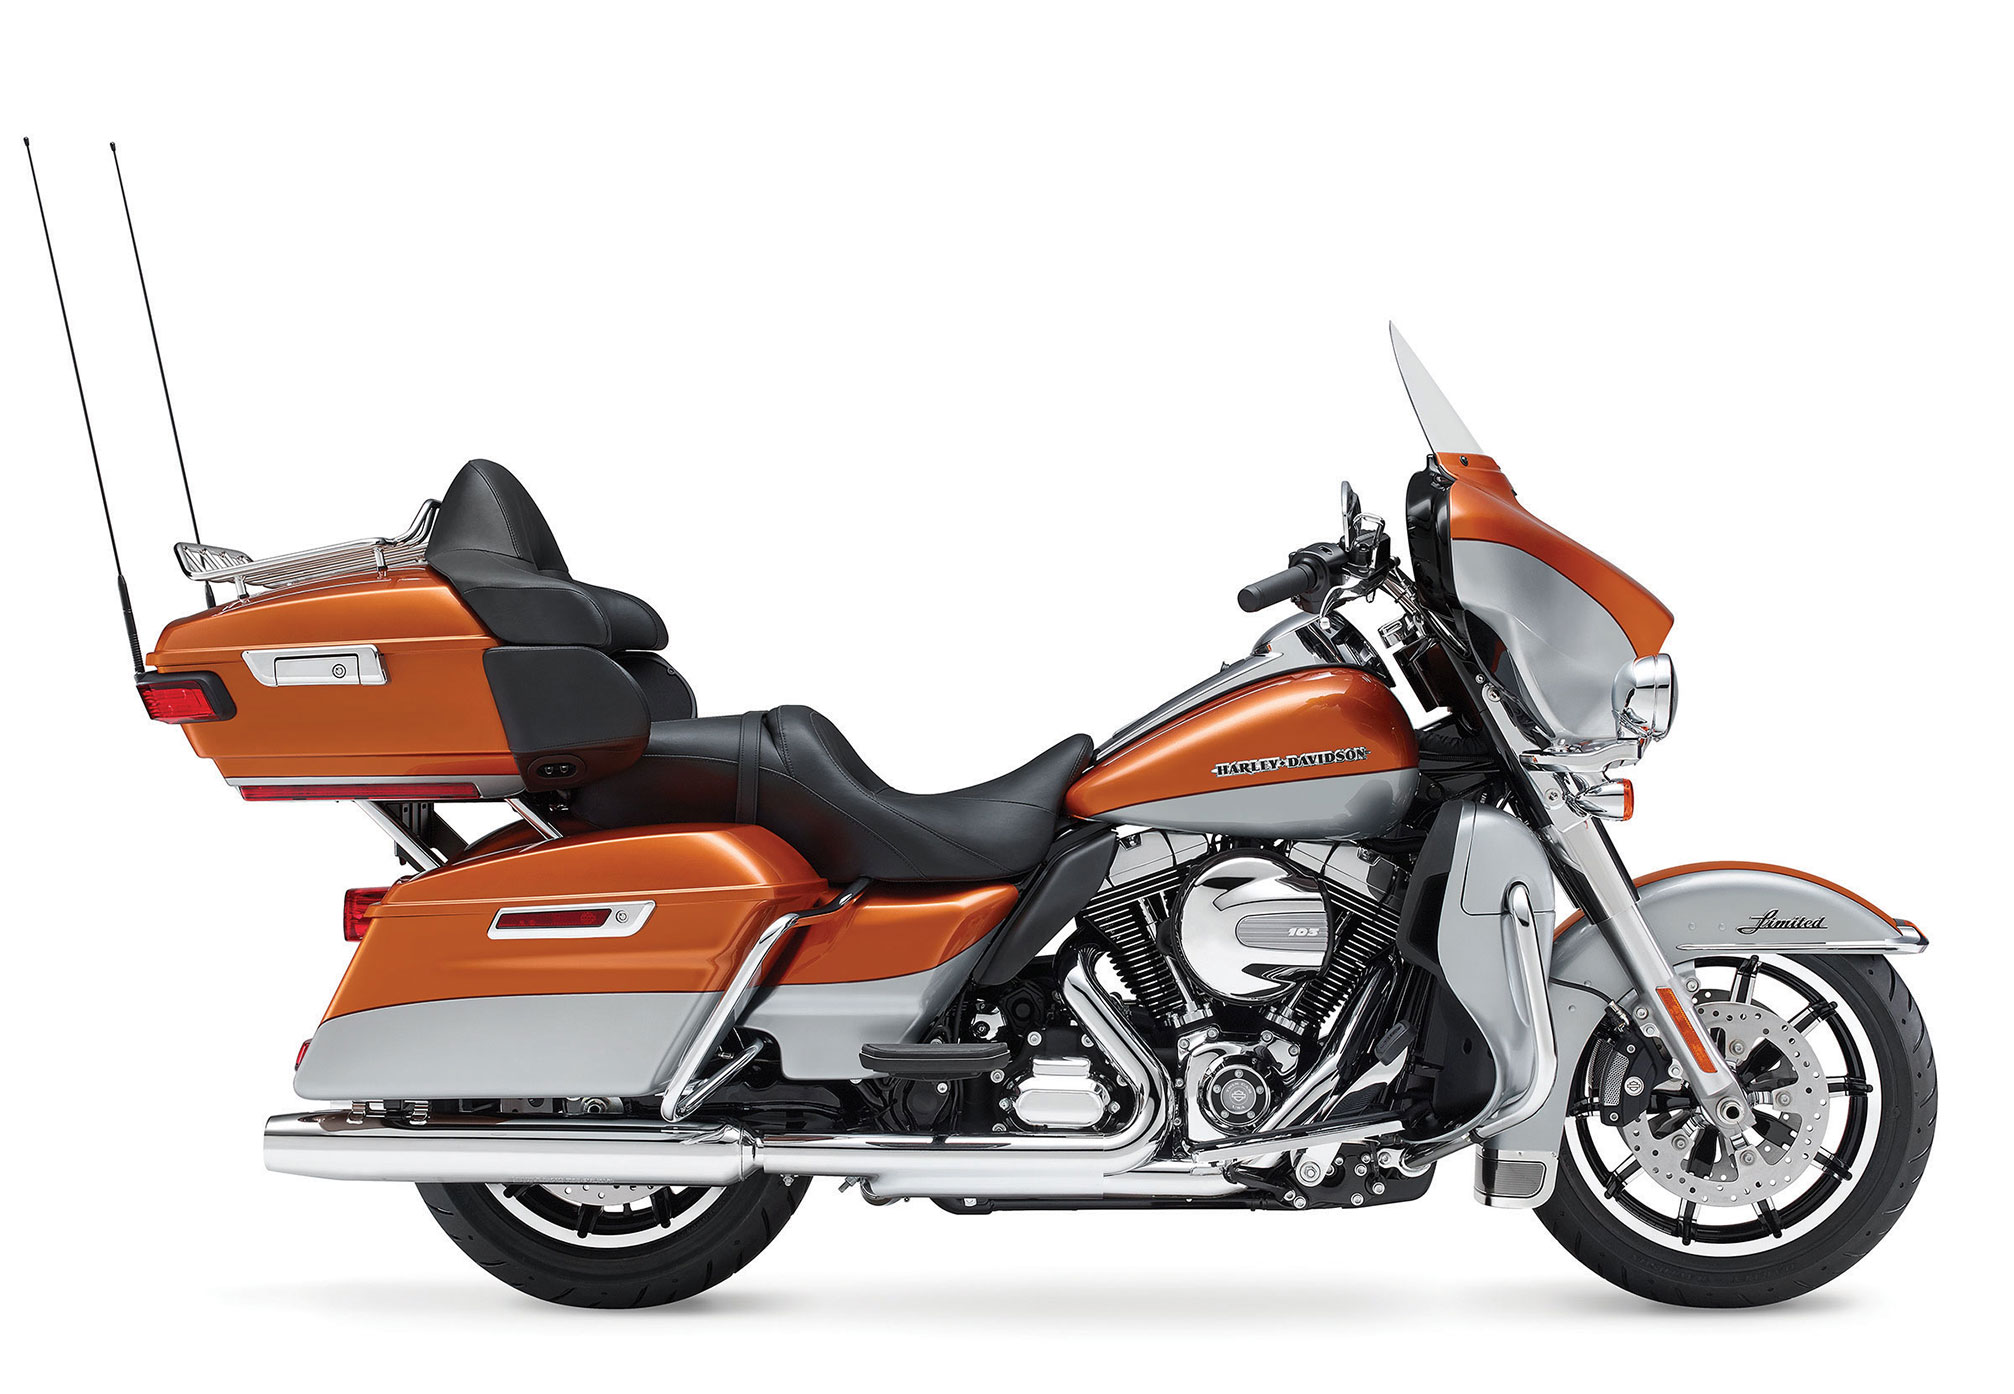 2014 Harley Davidson Ultra Limited Wiring Diagram Free Download 2015 Dyna 2011 Flhtk Electra Glide Pics Specs Problems At Boom Audio Unique